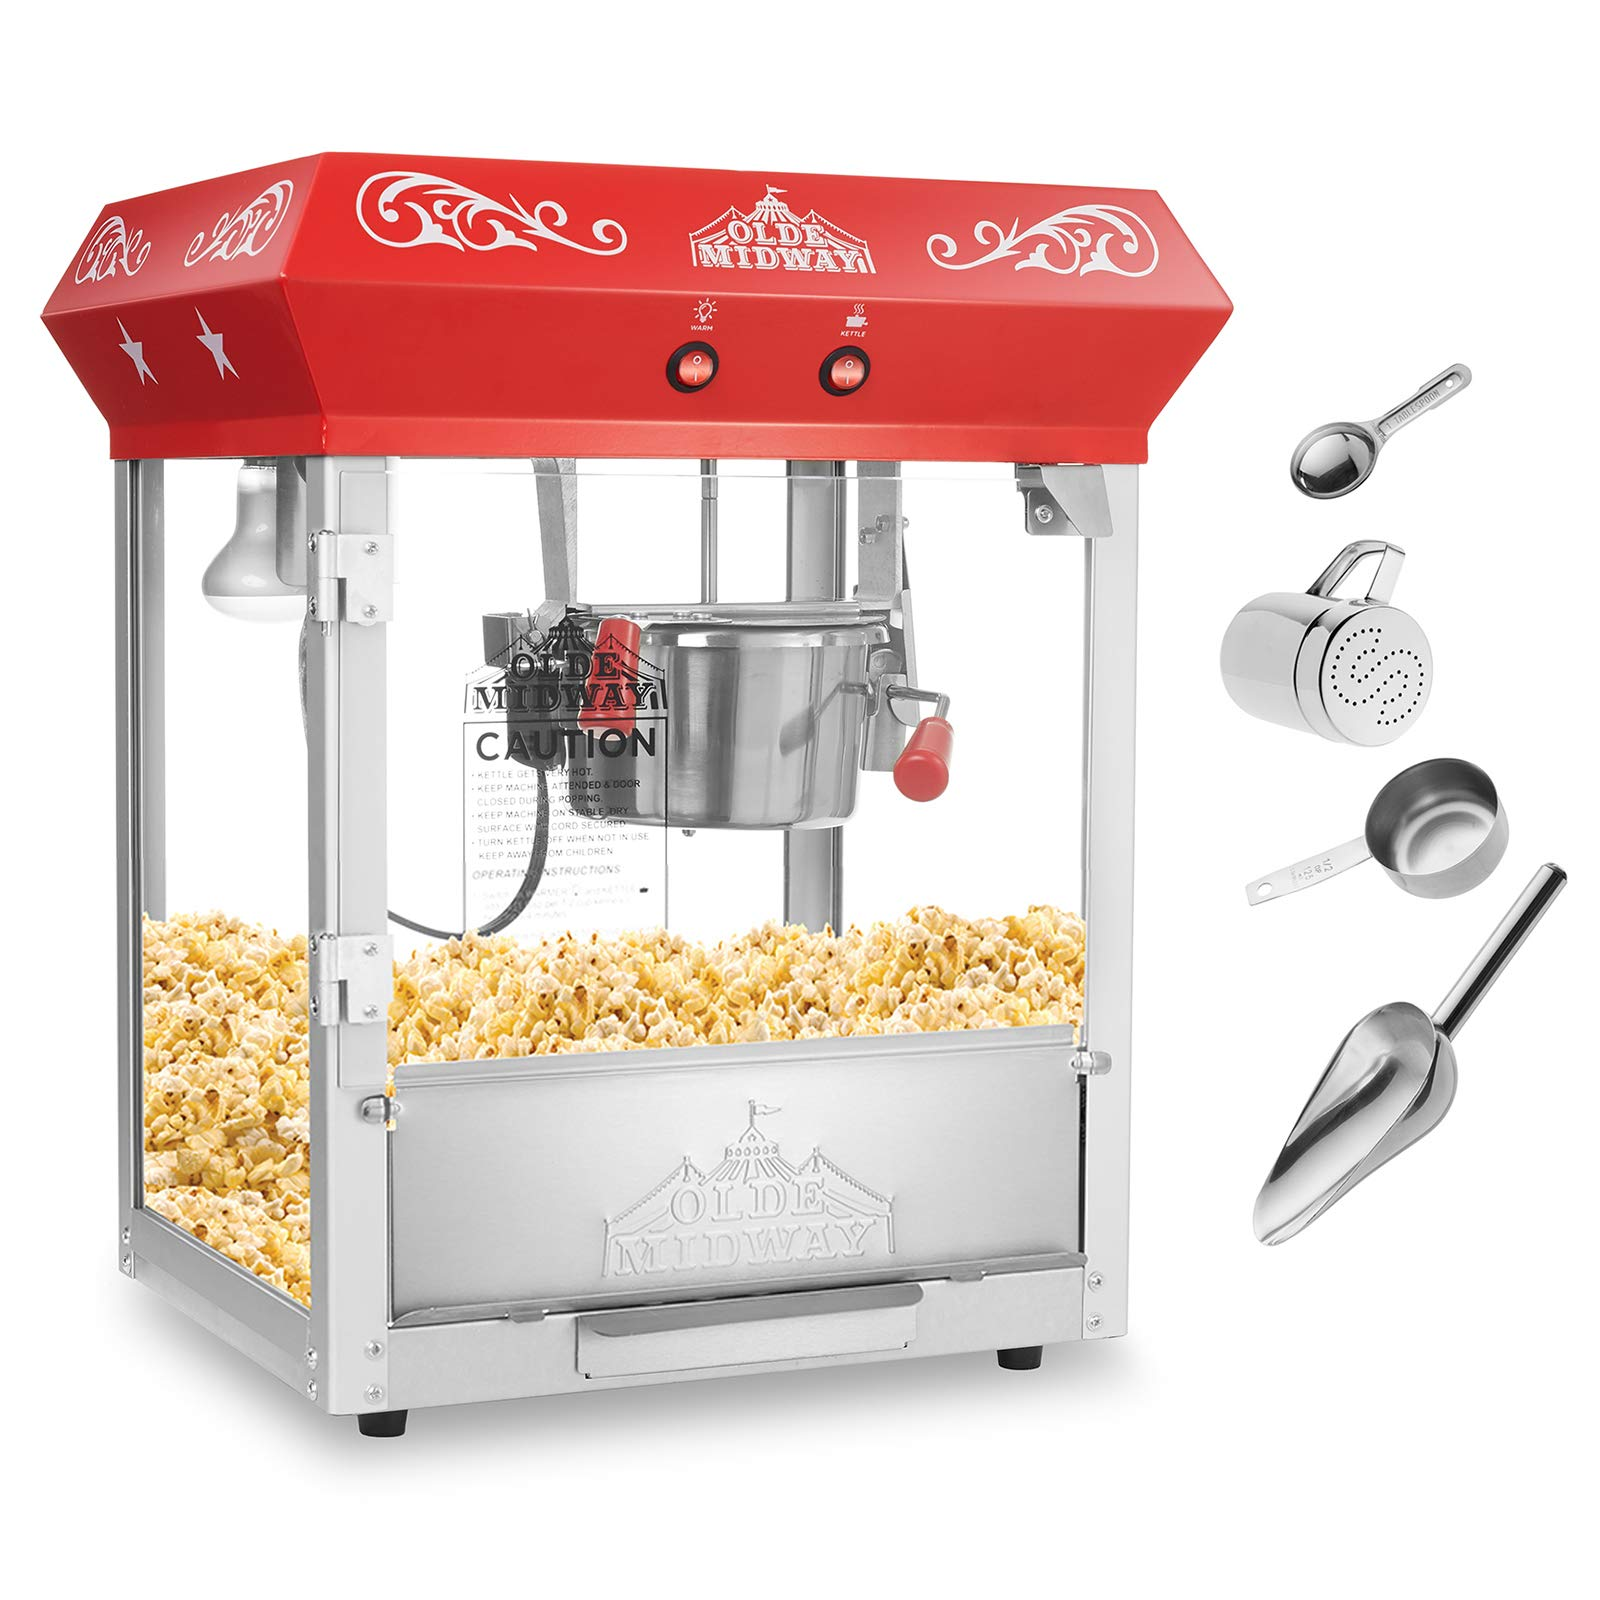 Olde Midway Bar Style Popcorn Machine Maker Popper with 6-Ounce Kettle - Red by Olde Midway